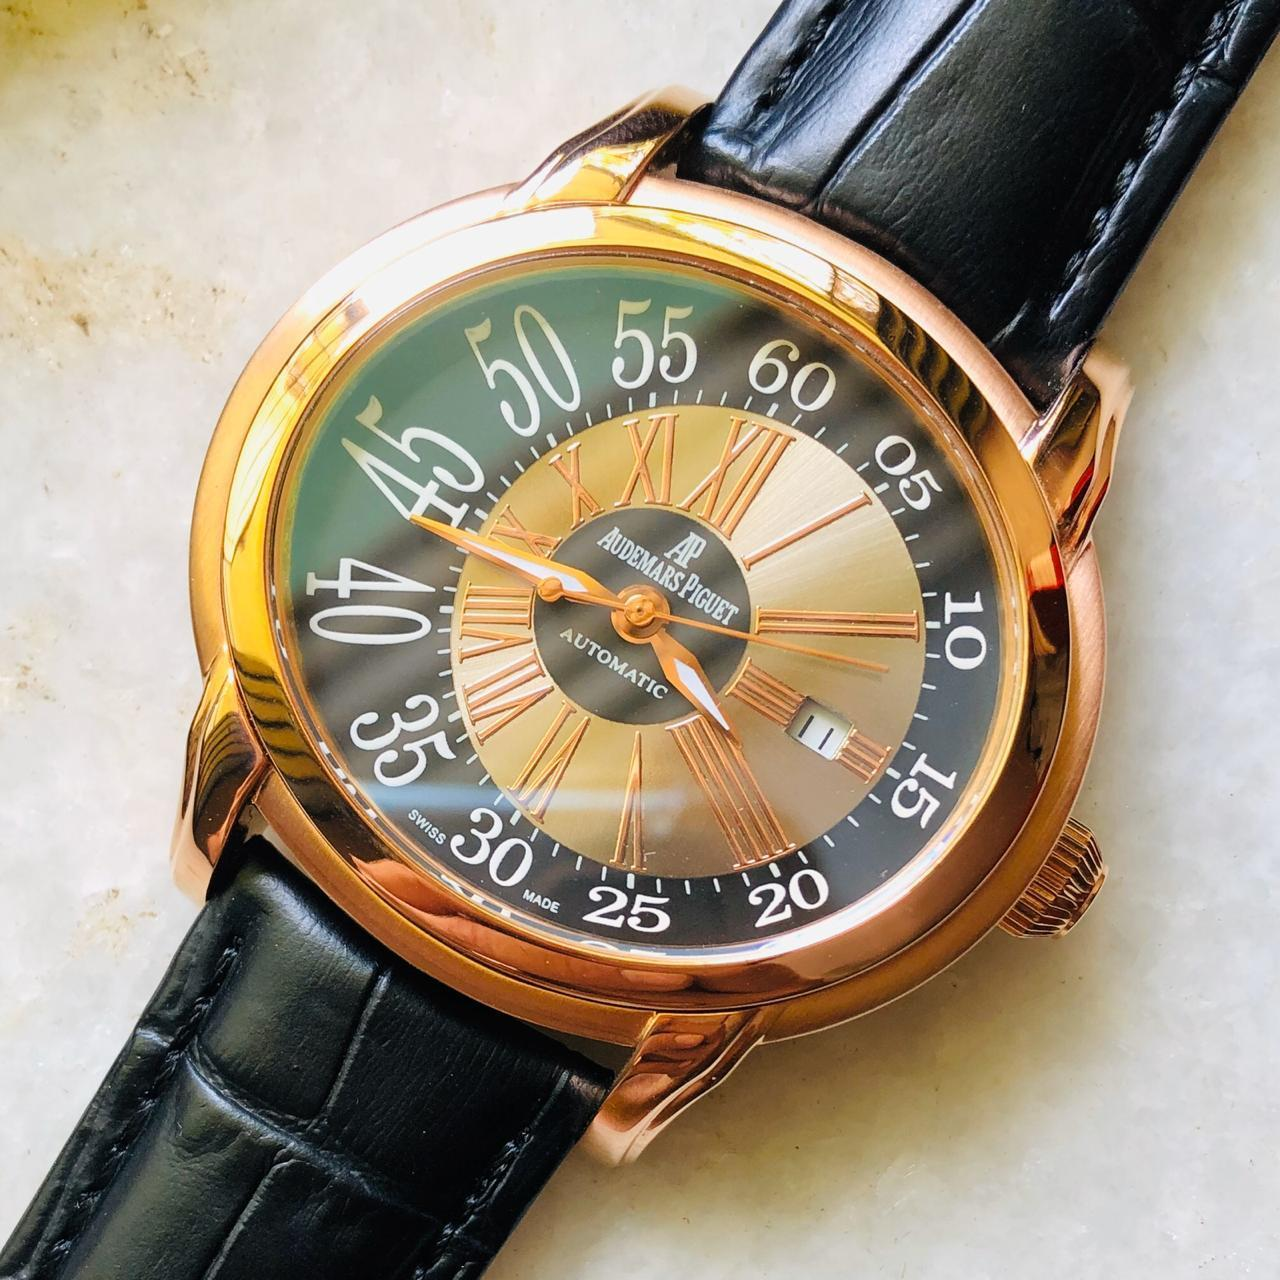 Audemars Piguet Millenary Quincy Joss Limited Edition Men's Watch First Copy